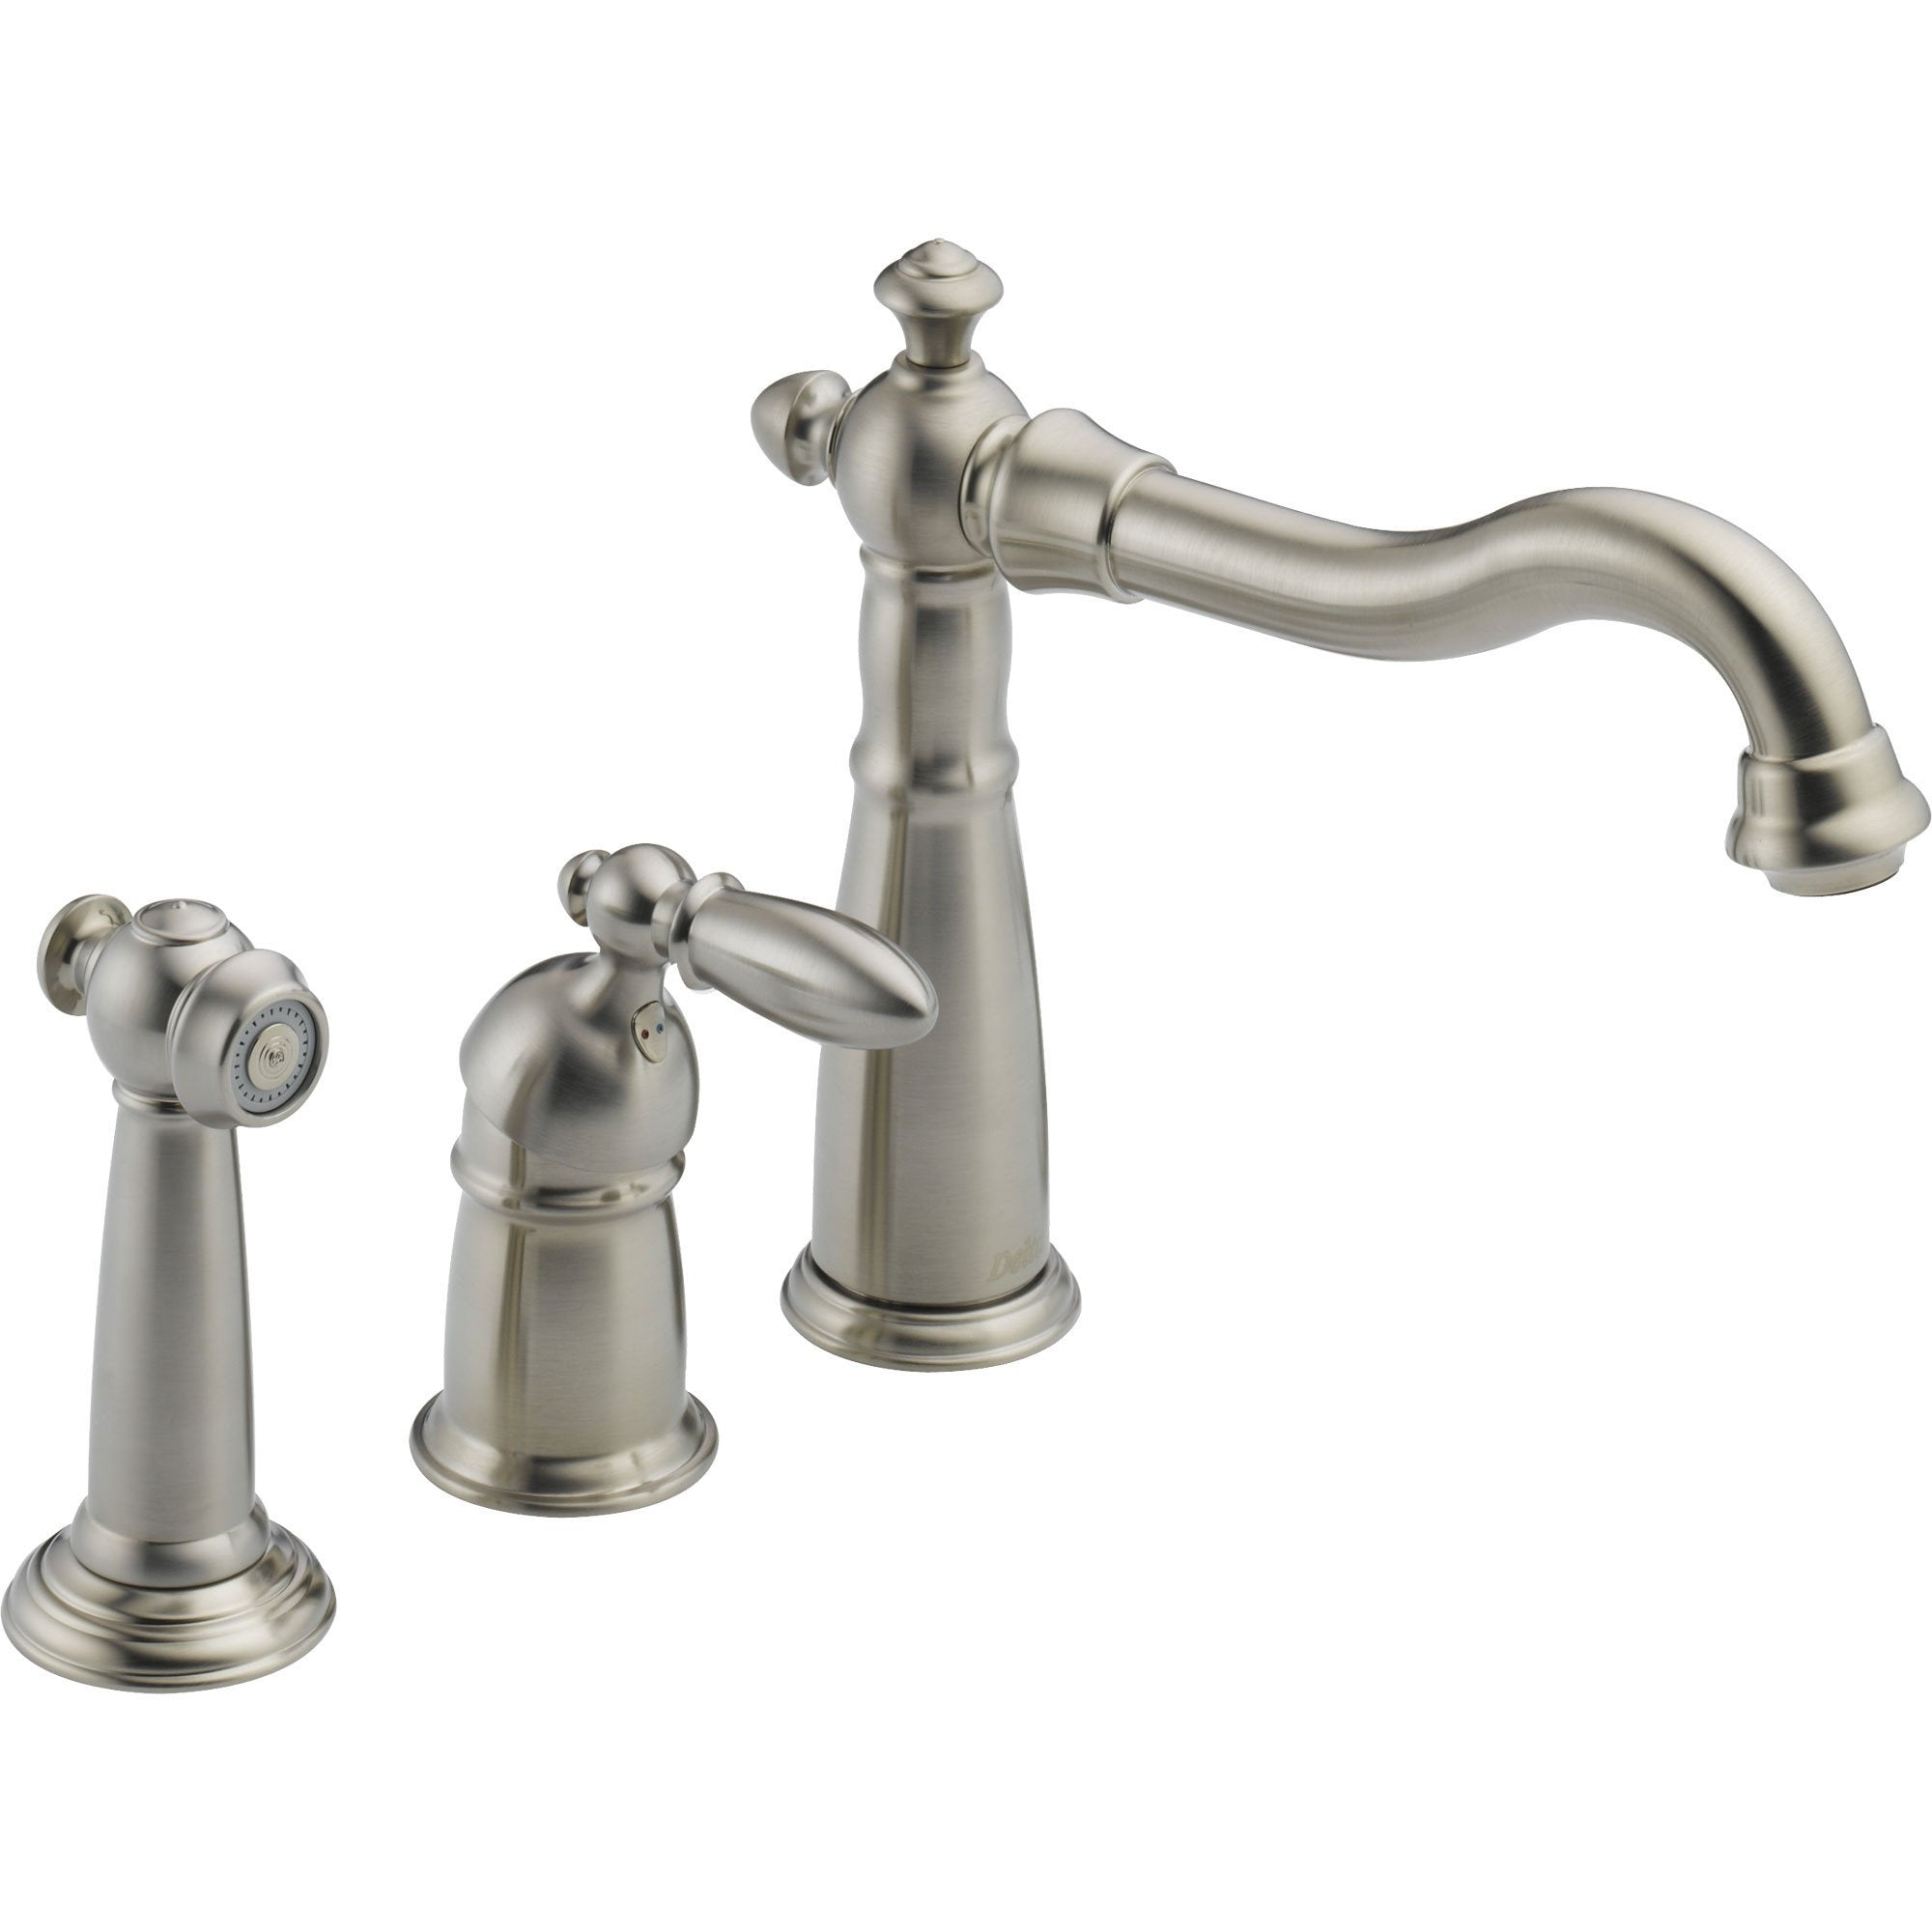 Delta Victorian Widespread Stainless Steel Kitchen Faucet w/ Side Spray 473179